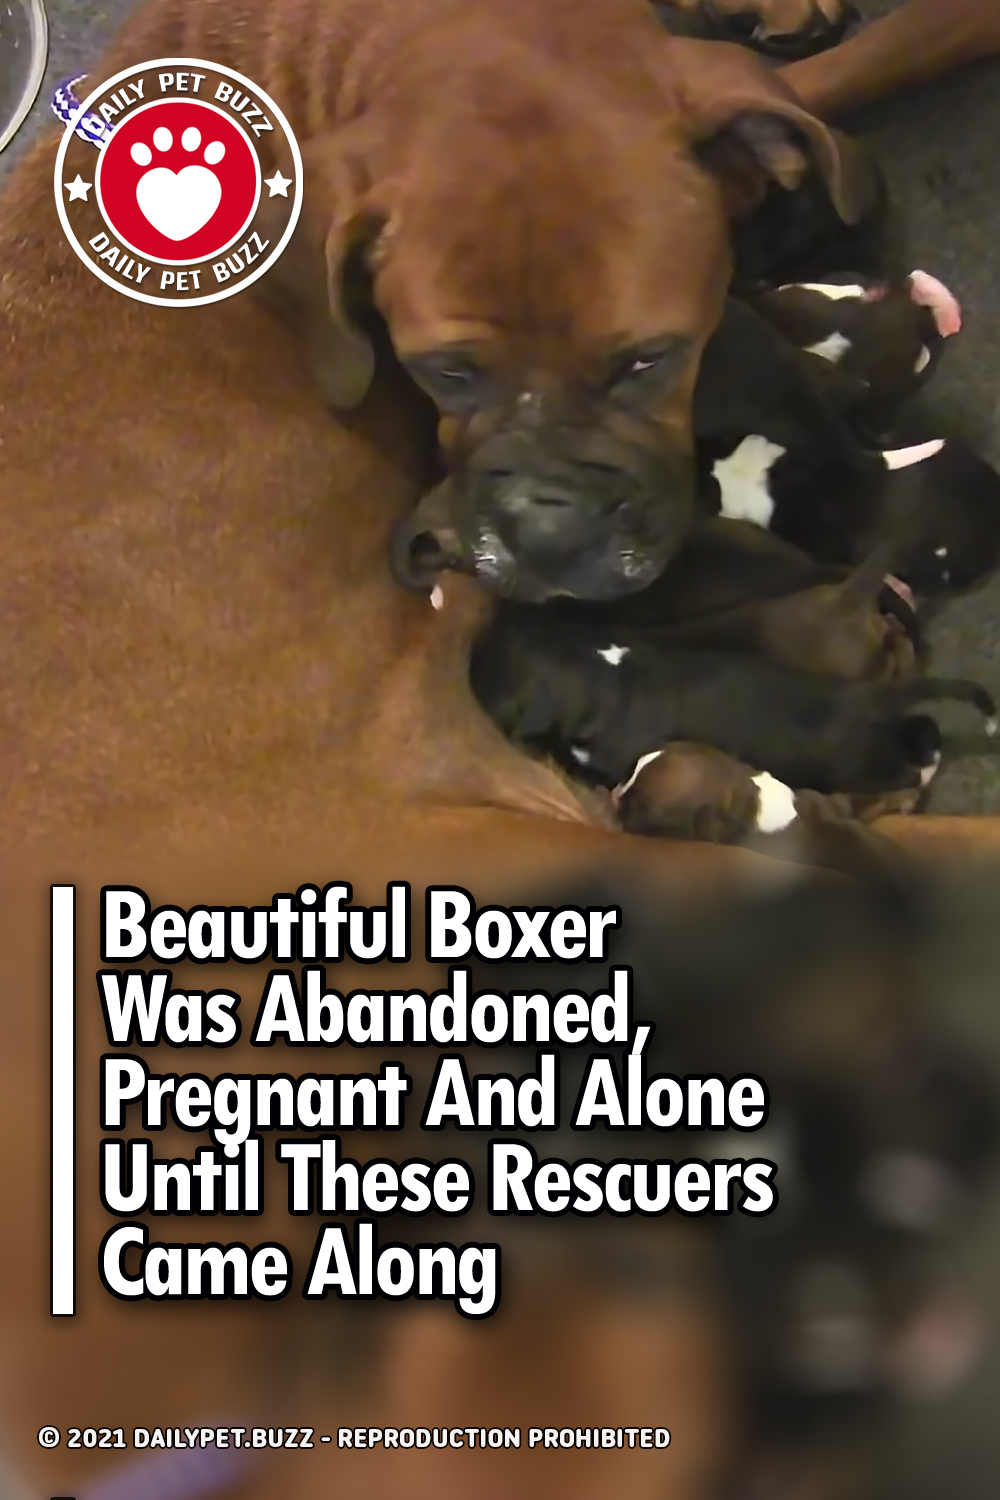 Beautiful Boxer Was Abandoned, Pregnant And Alone Until These Rescuers Came Along